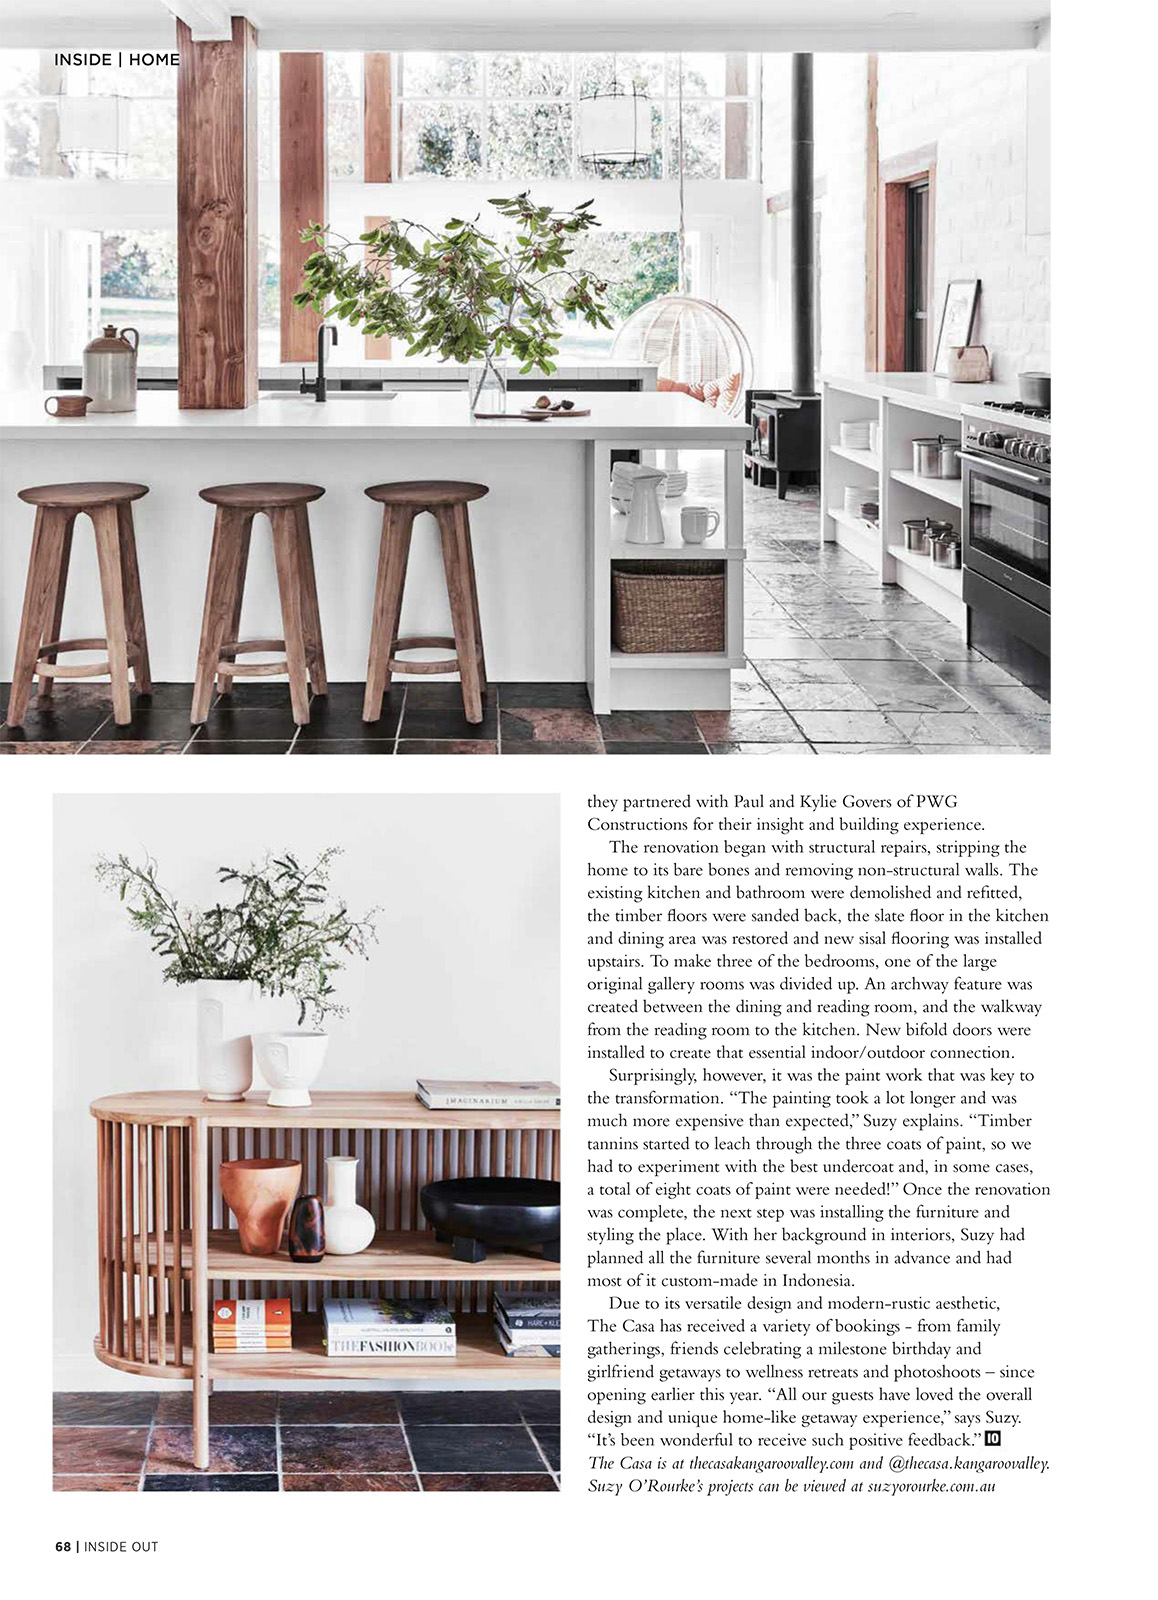 The Casa – Inside Out magazine